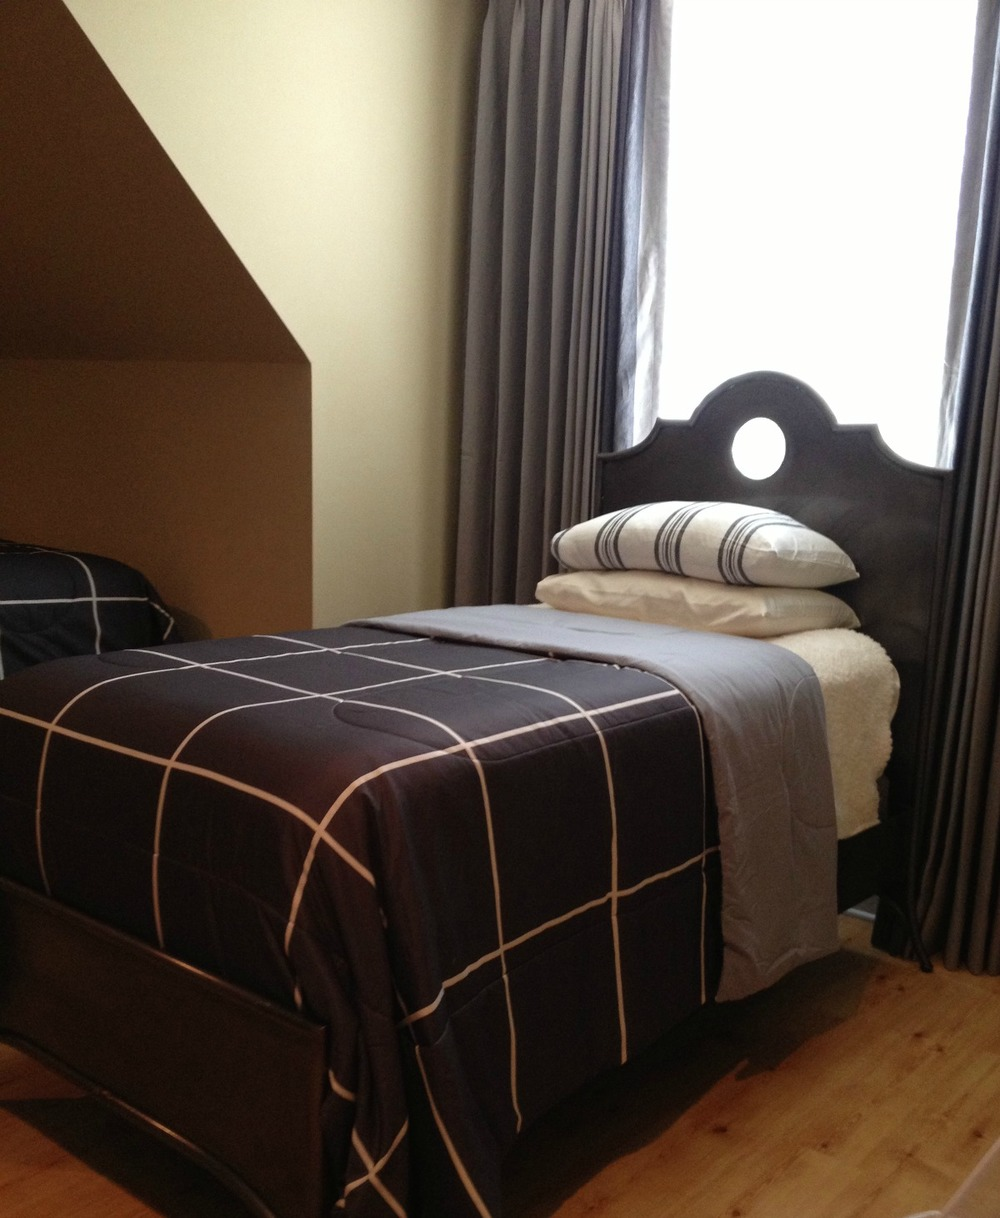 black-and-cream-bed.jpg